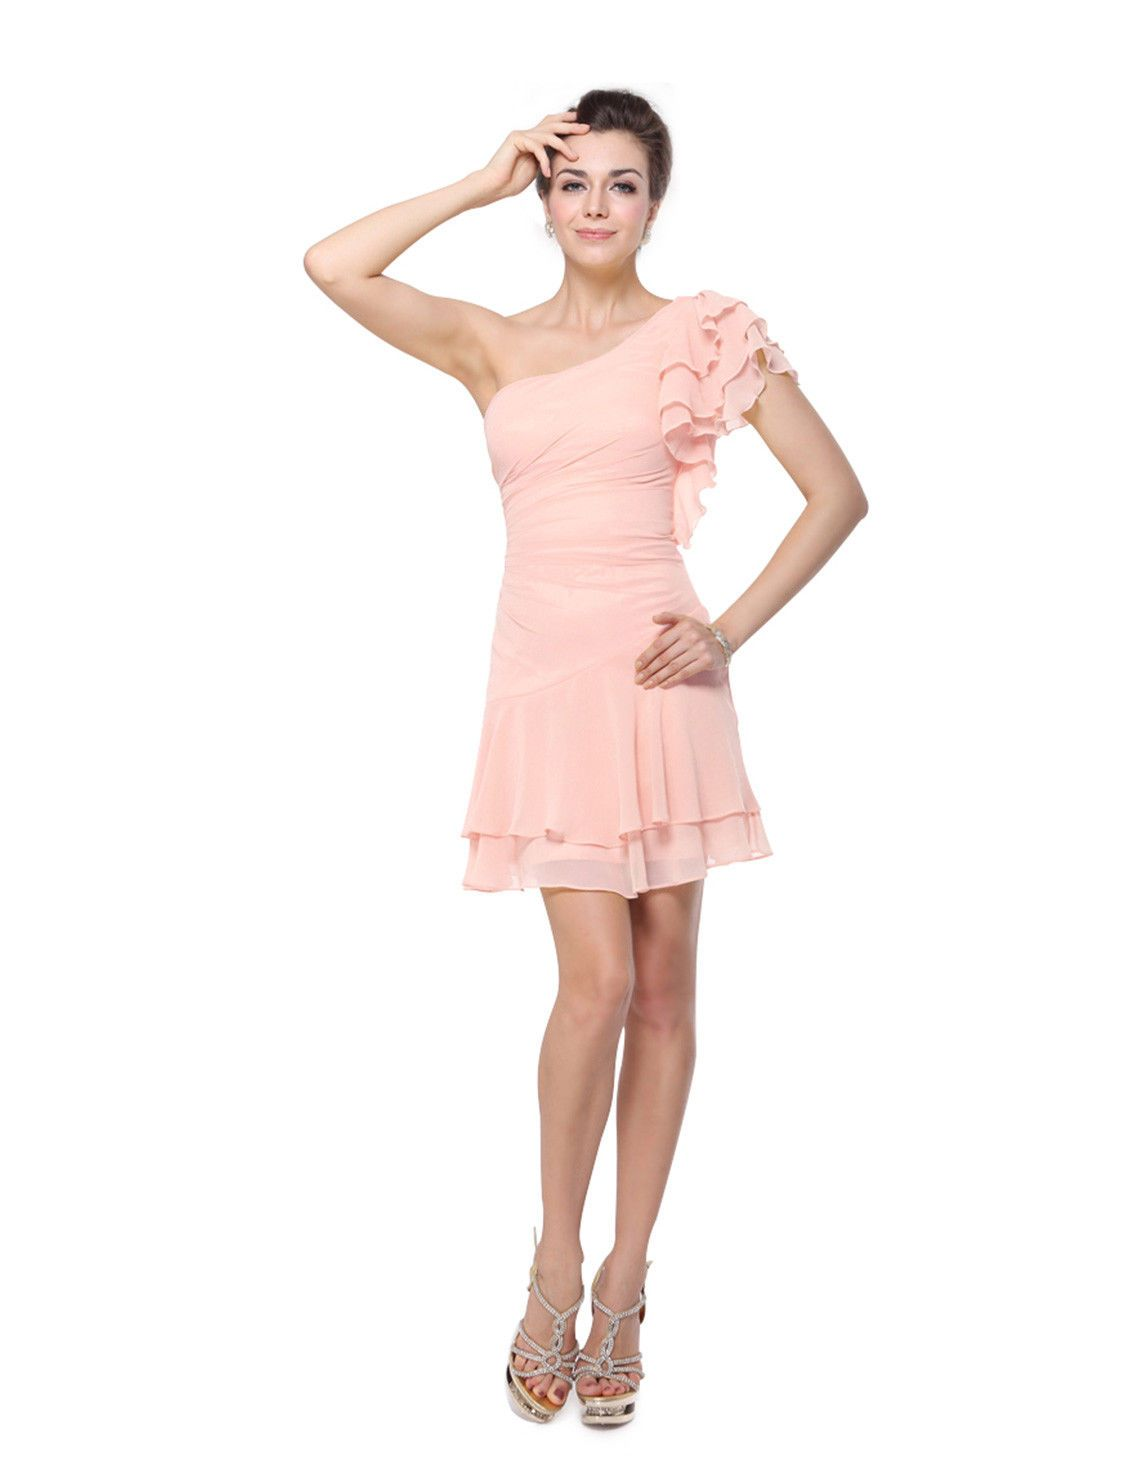 Womens Short Prom Dresses 2017 Ruffle Homecoming Cocktail Party Ball ...